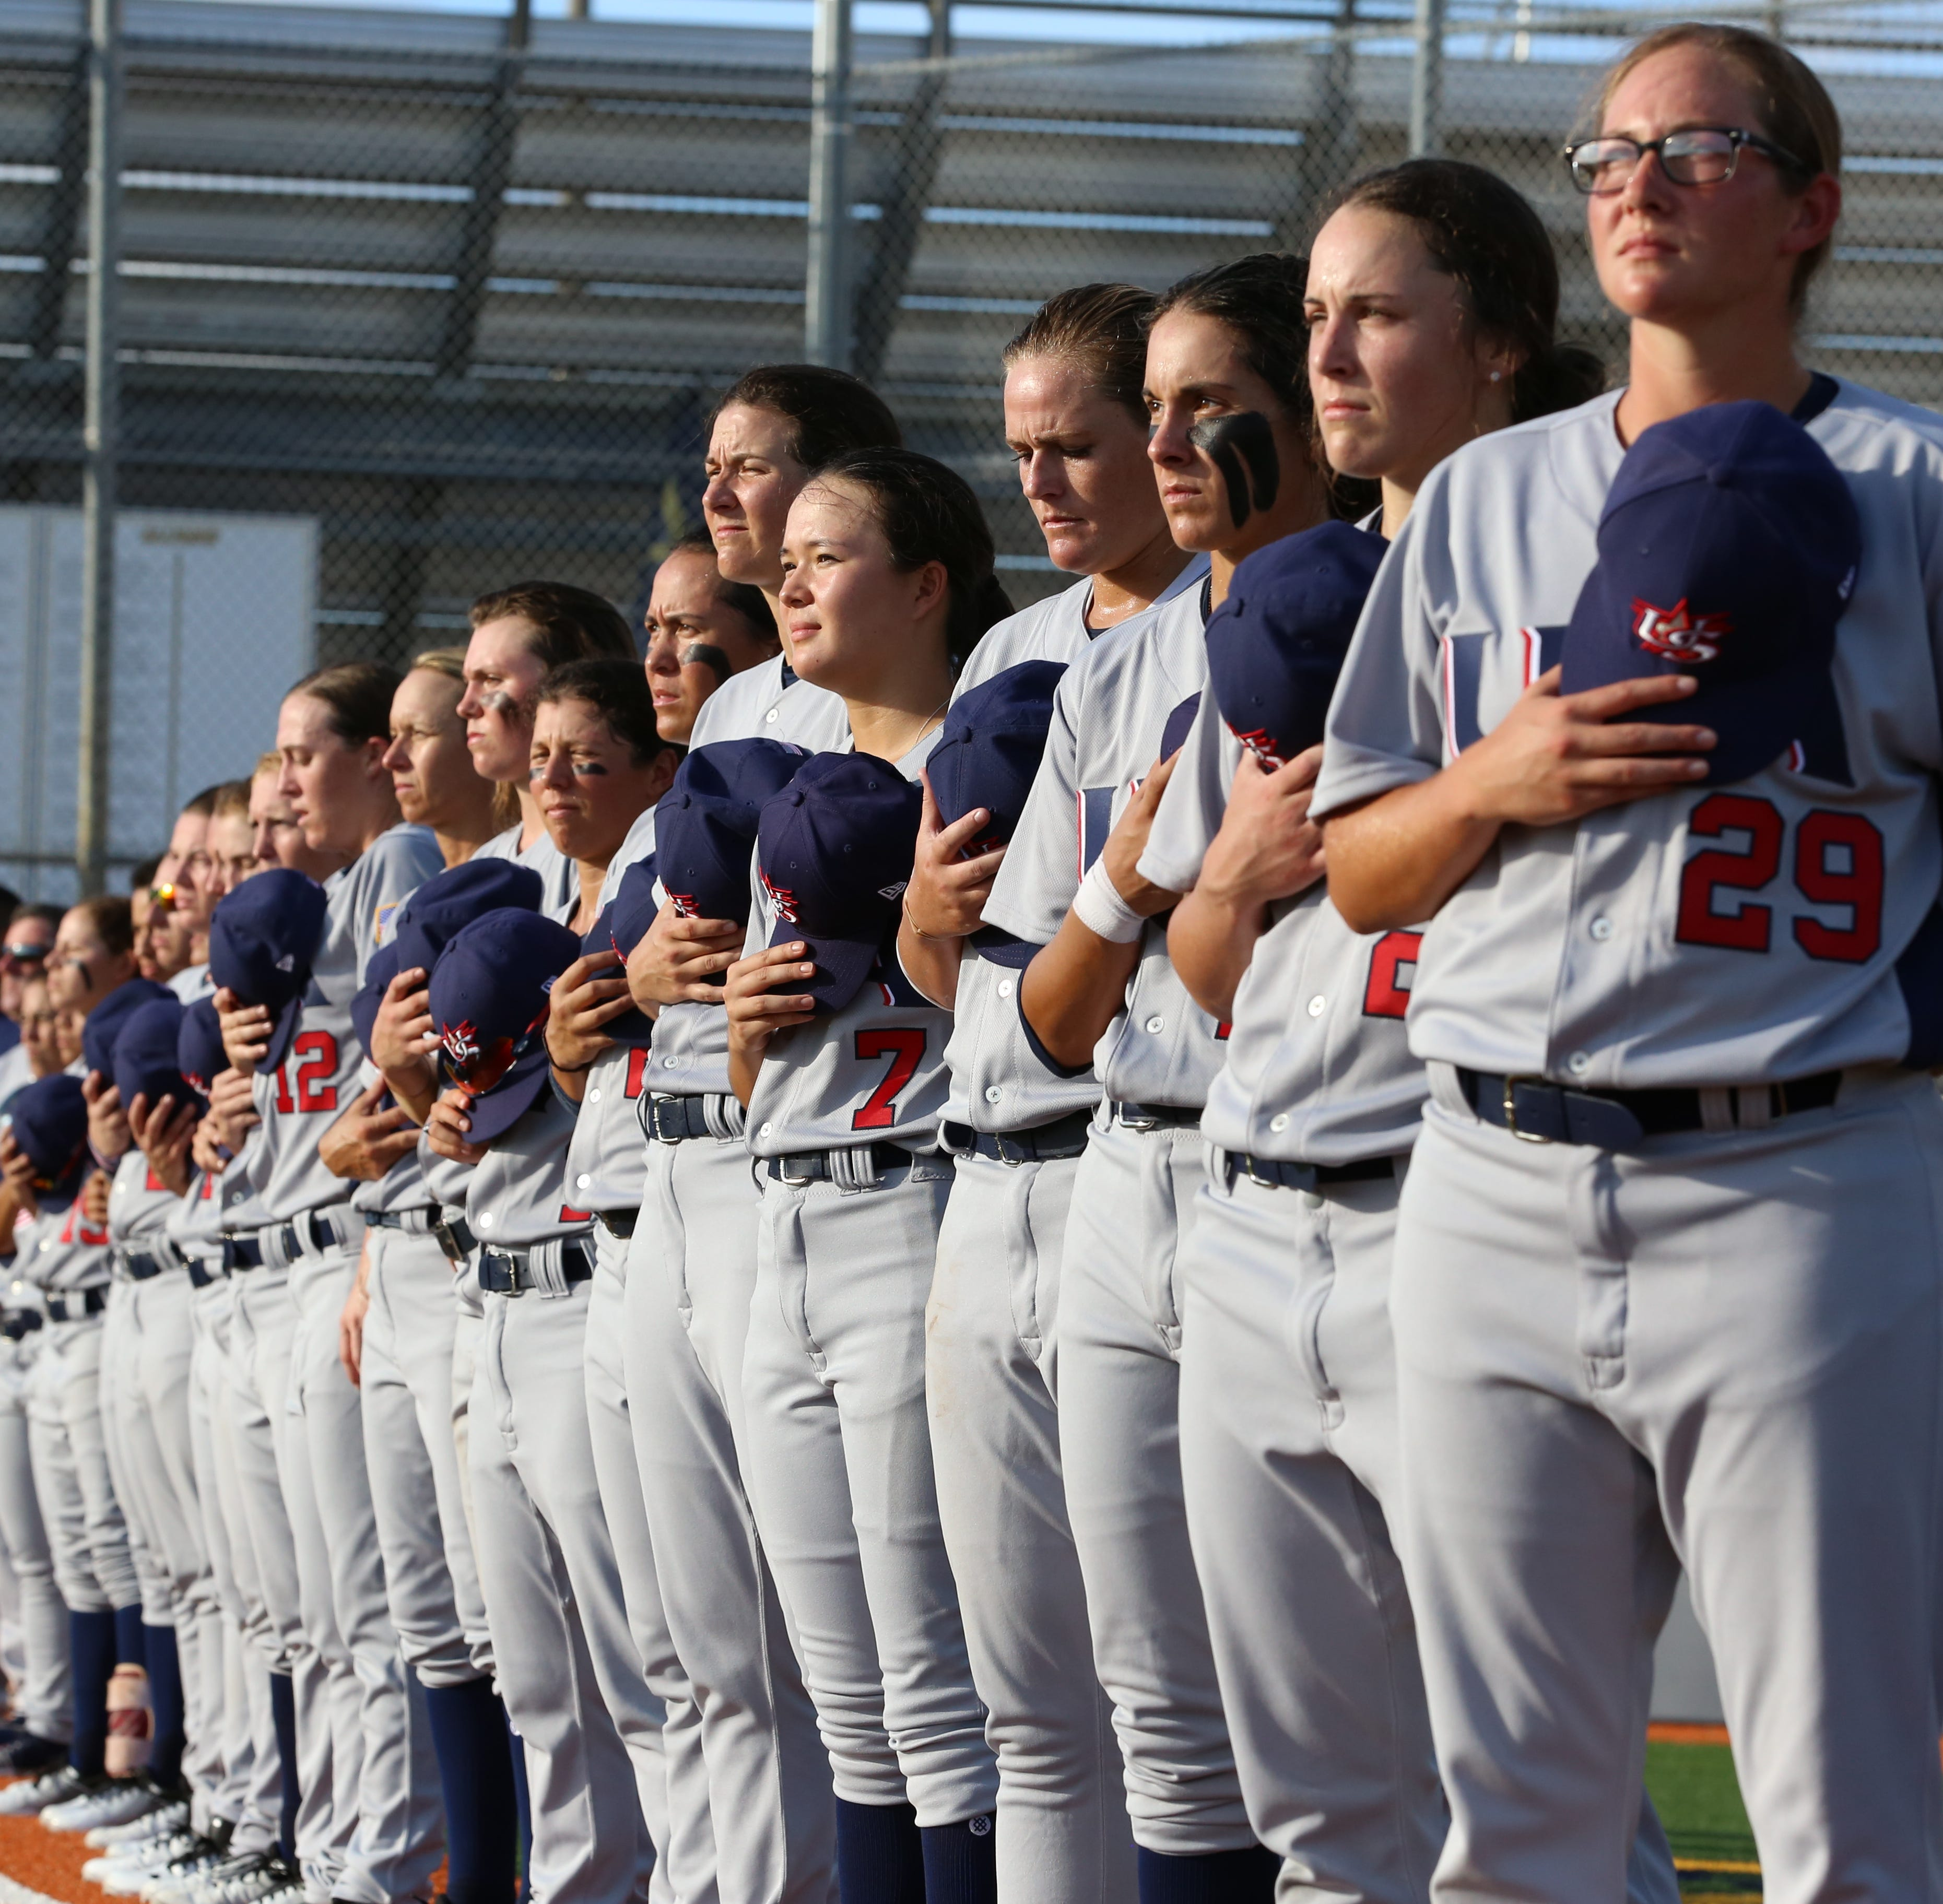 The top 20 women baseball players in the country represent Team USA at the 2018 Women's Baseball World Cup in Viera. The tournament begins Wednesday and runs through Aug. 31.